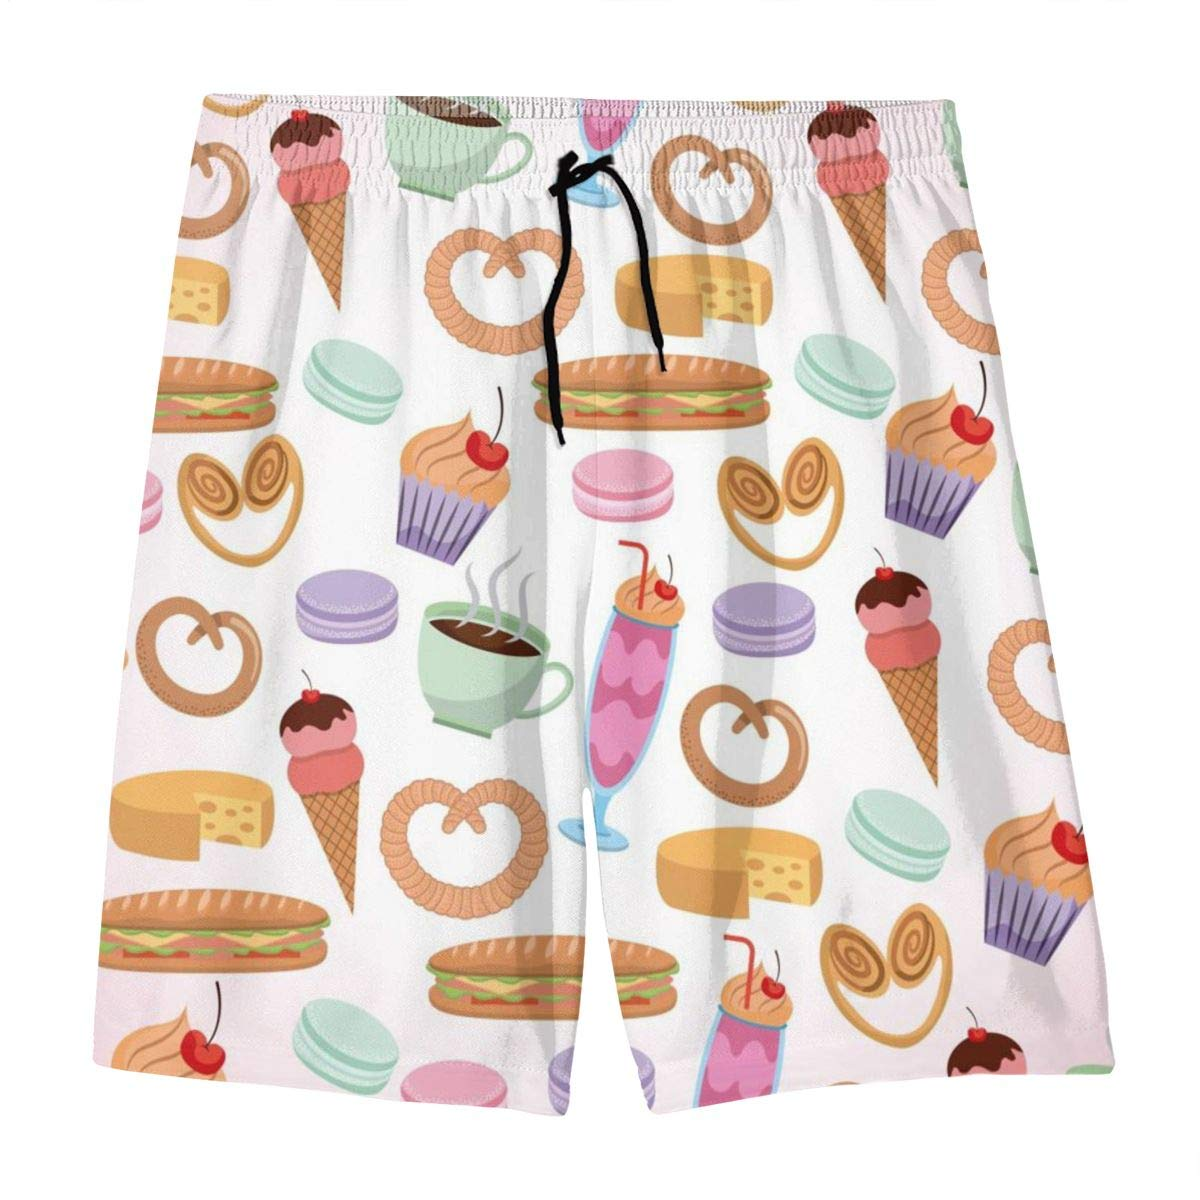 Mens Swim Trunks France Paris Printed Beach Board Shorts with Pockets Cool Novelty Bathing Suits for Teen Boys